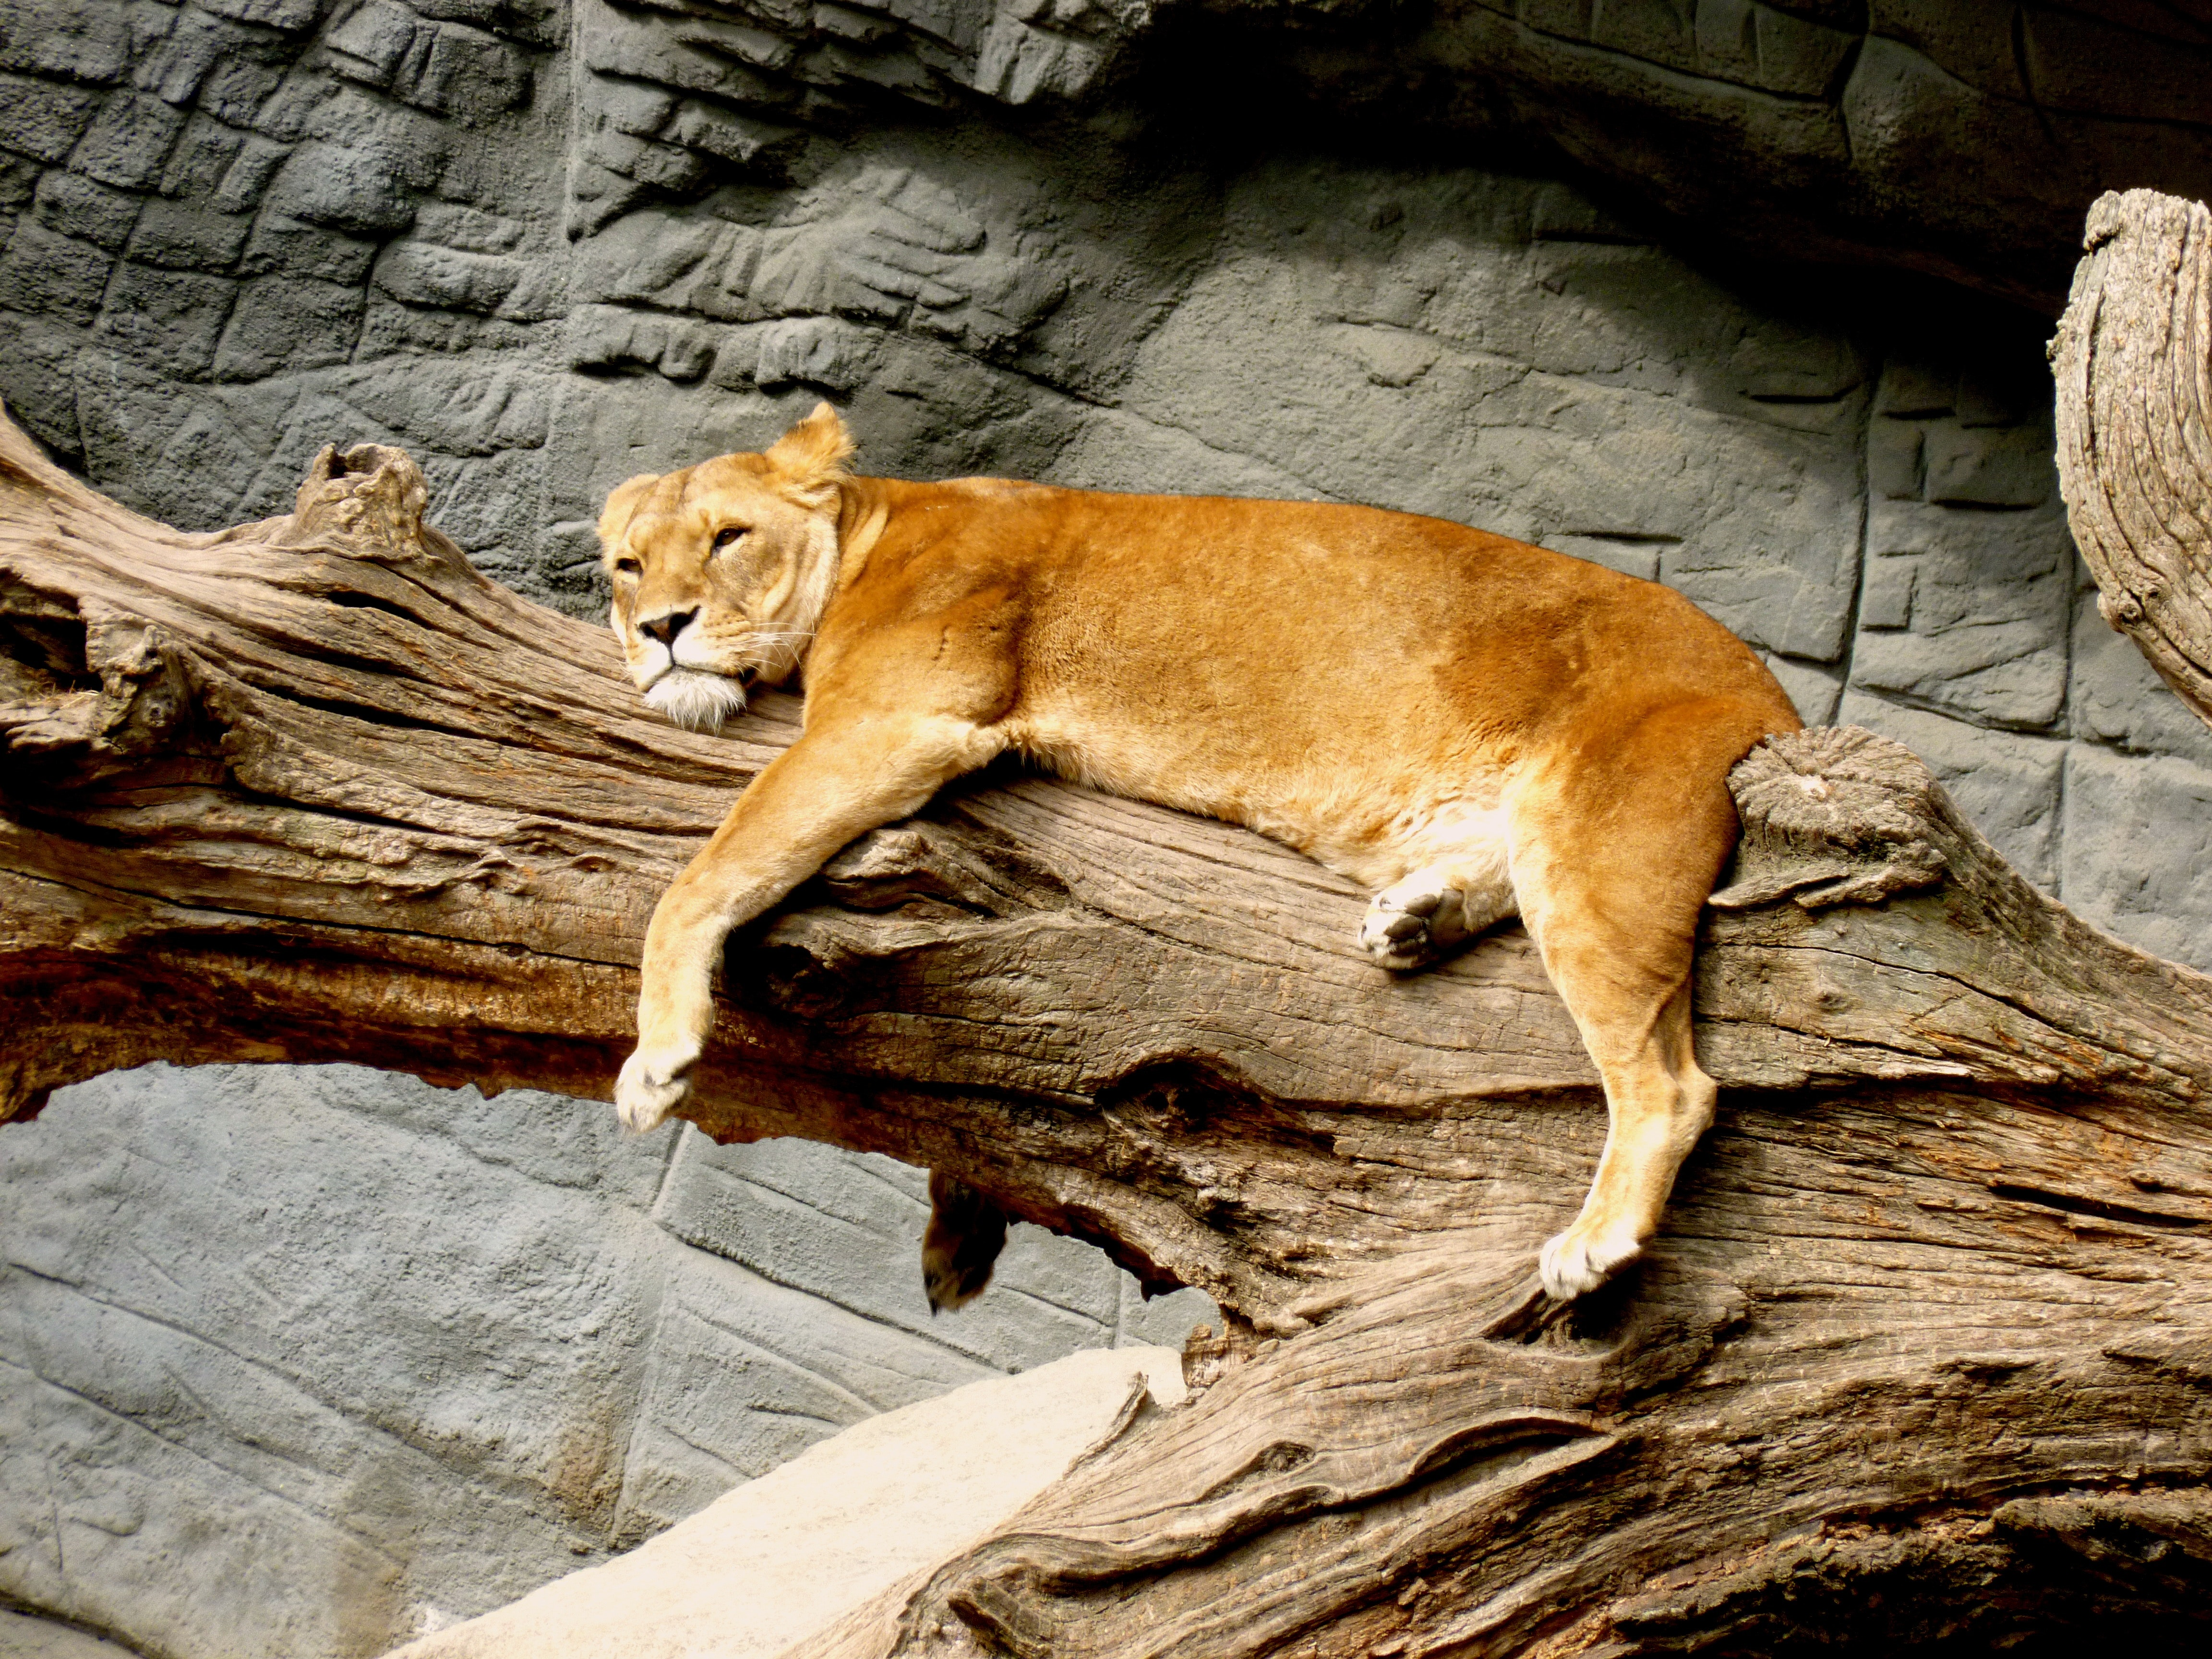 Lioness Lying on Brown Tree Trunk, Sleepy, Resting, Predator, Stone wall, HQ Photo